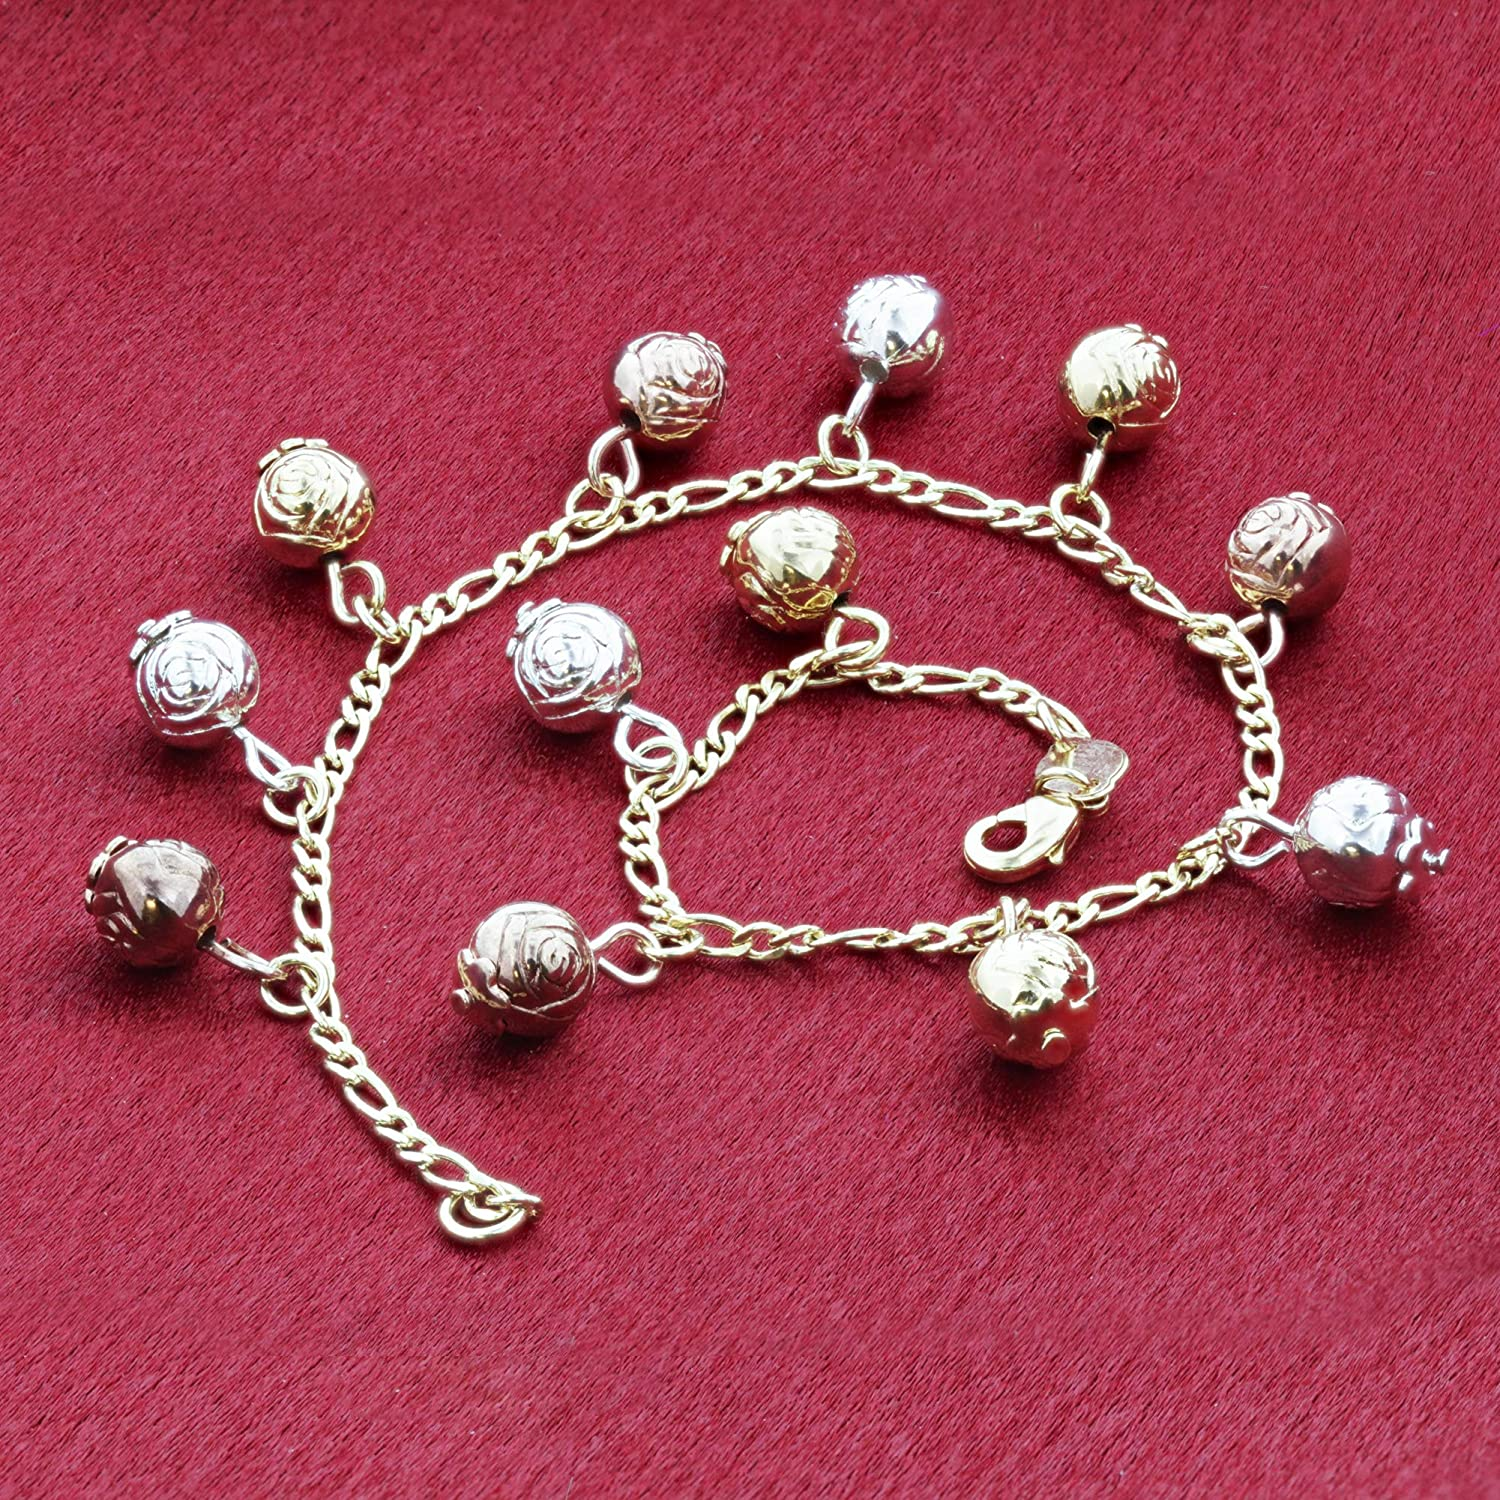 Three Tone Dangling Ornate Balls 8.5 Inch Foot Chain 18k Gold Overlay Anklet Ankle Bracelets